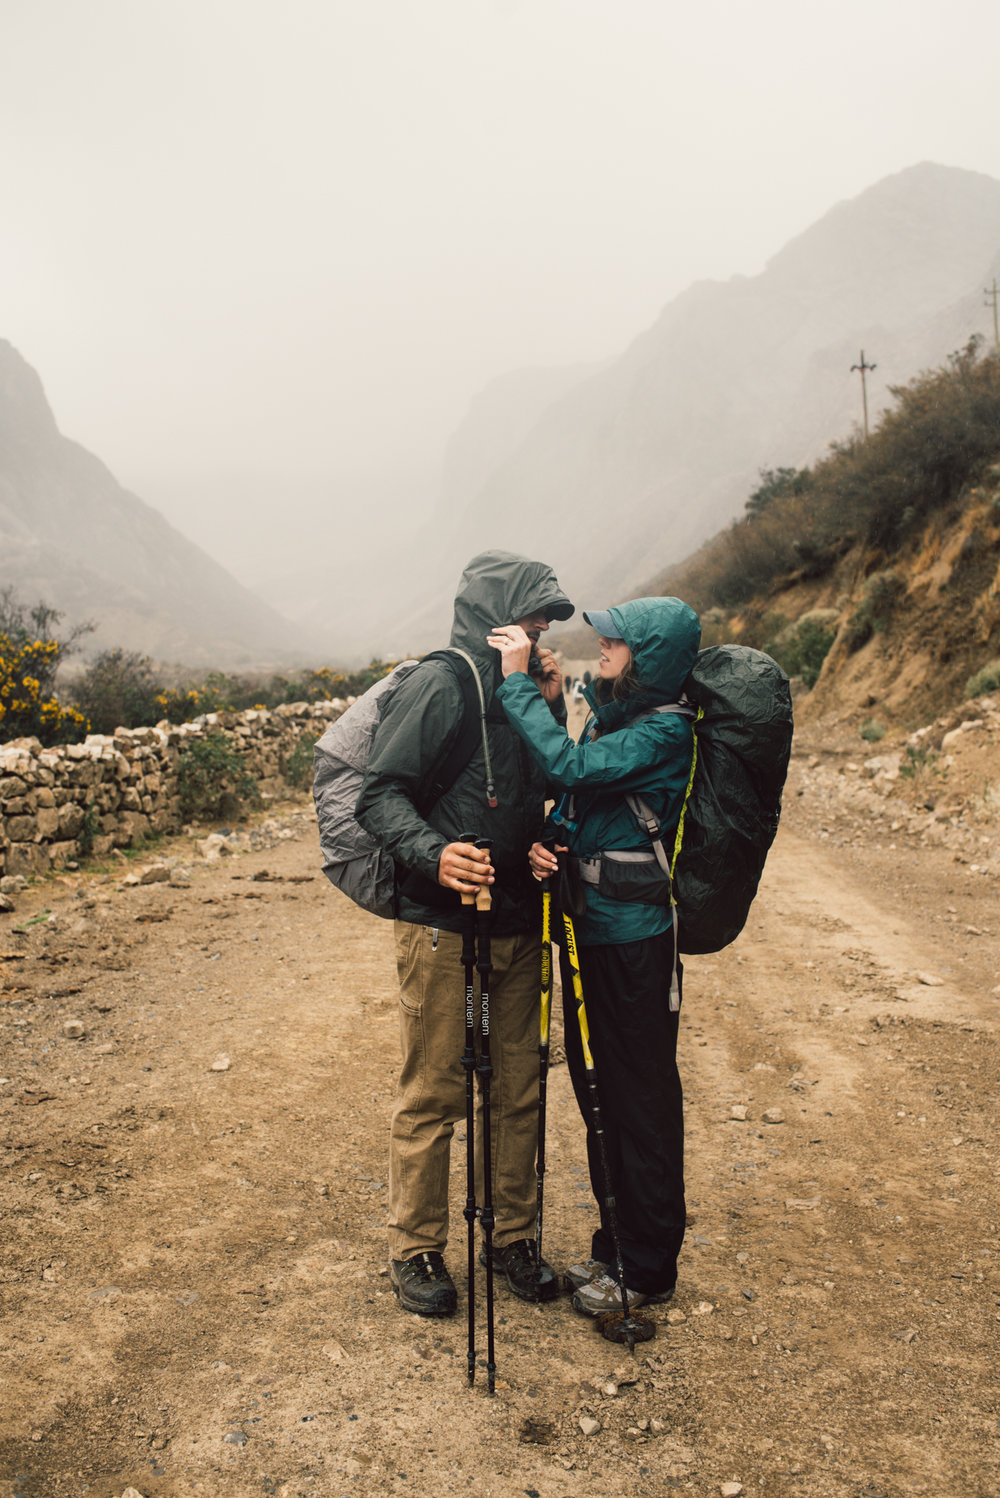 Damian and Jesse Engagement Session Huayhuash Mountain Trekking Peru_117.JPG